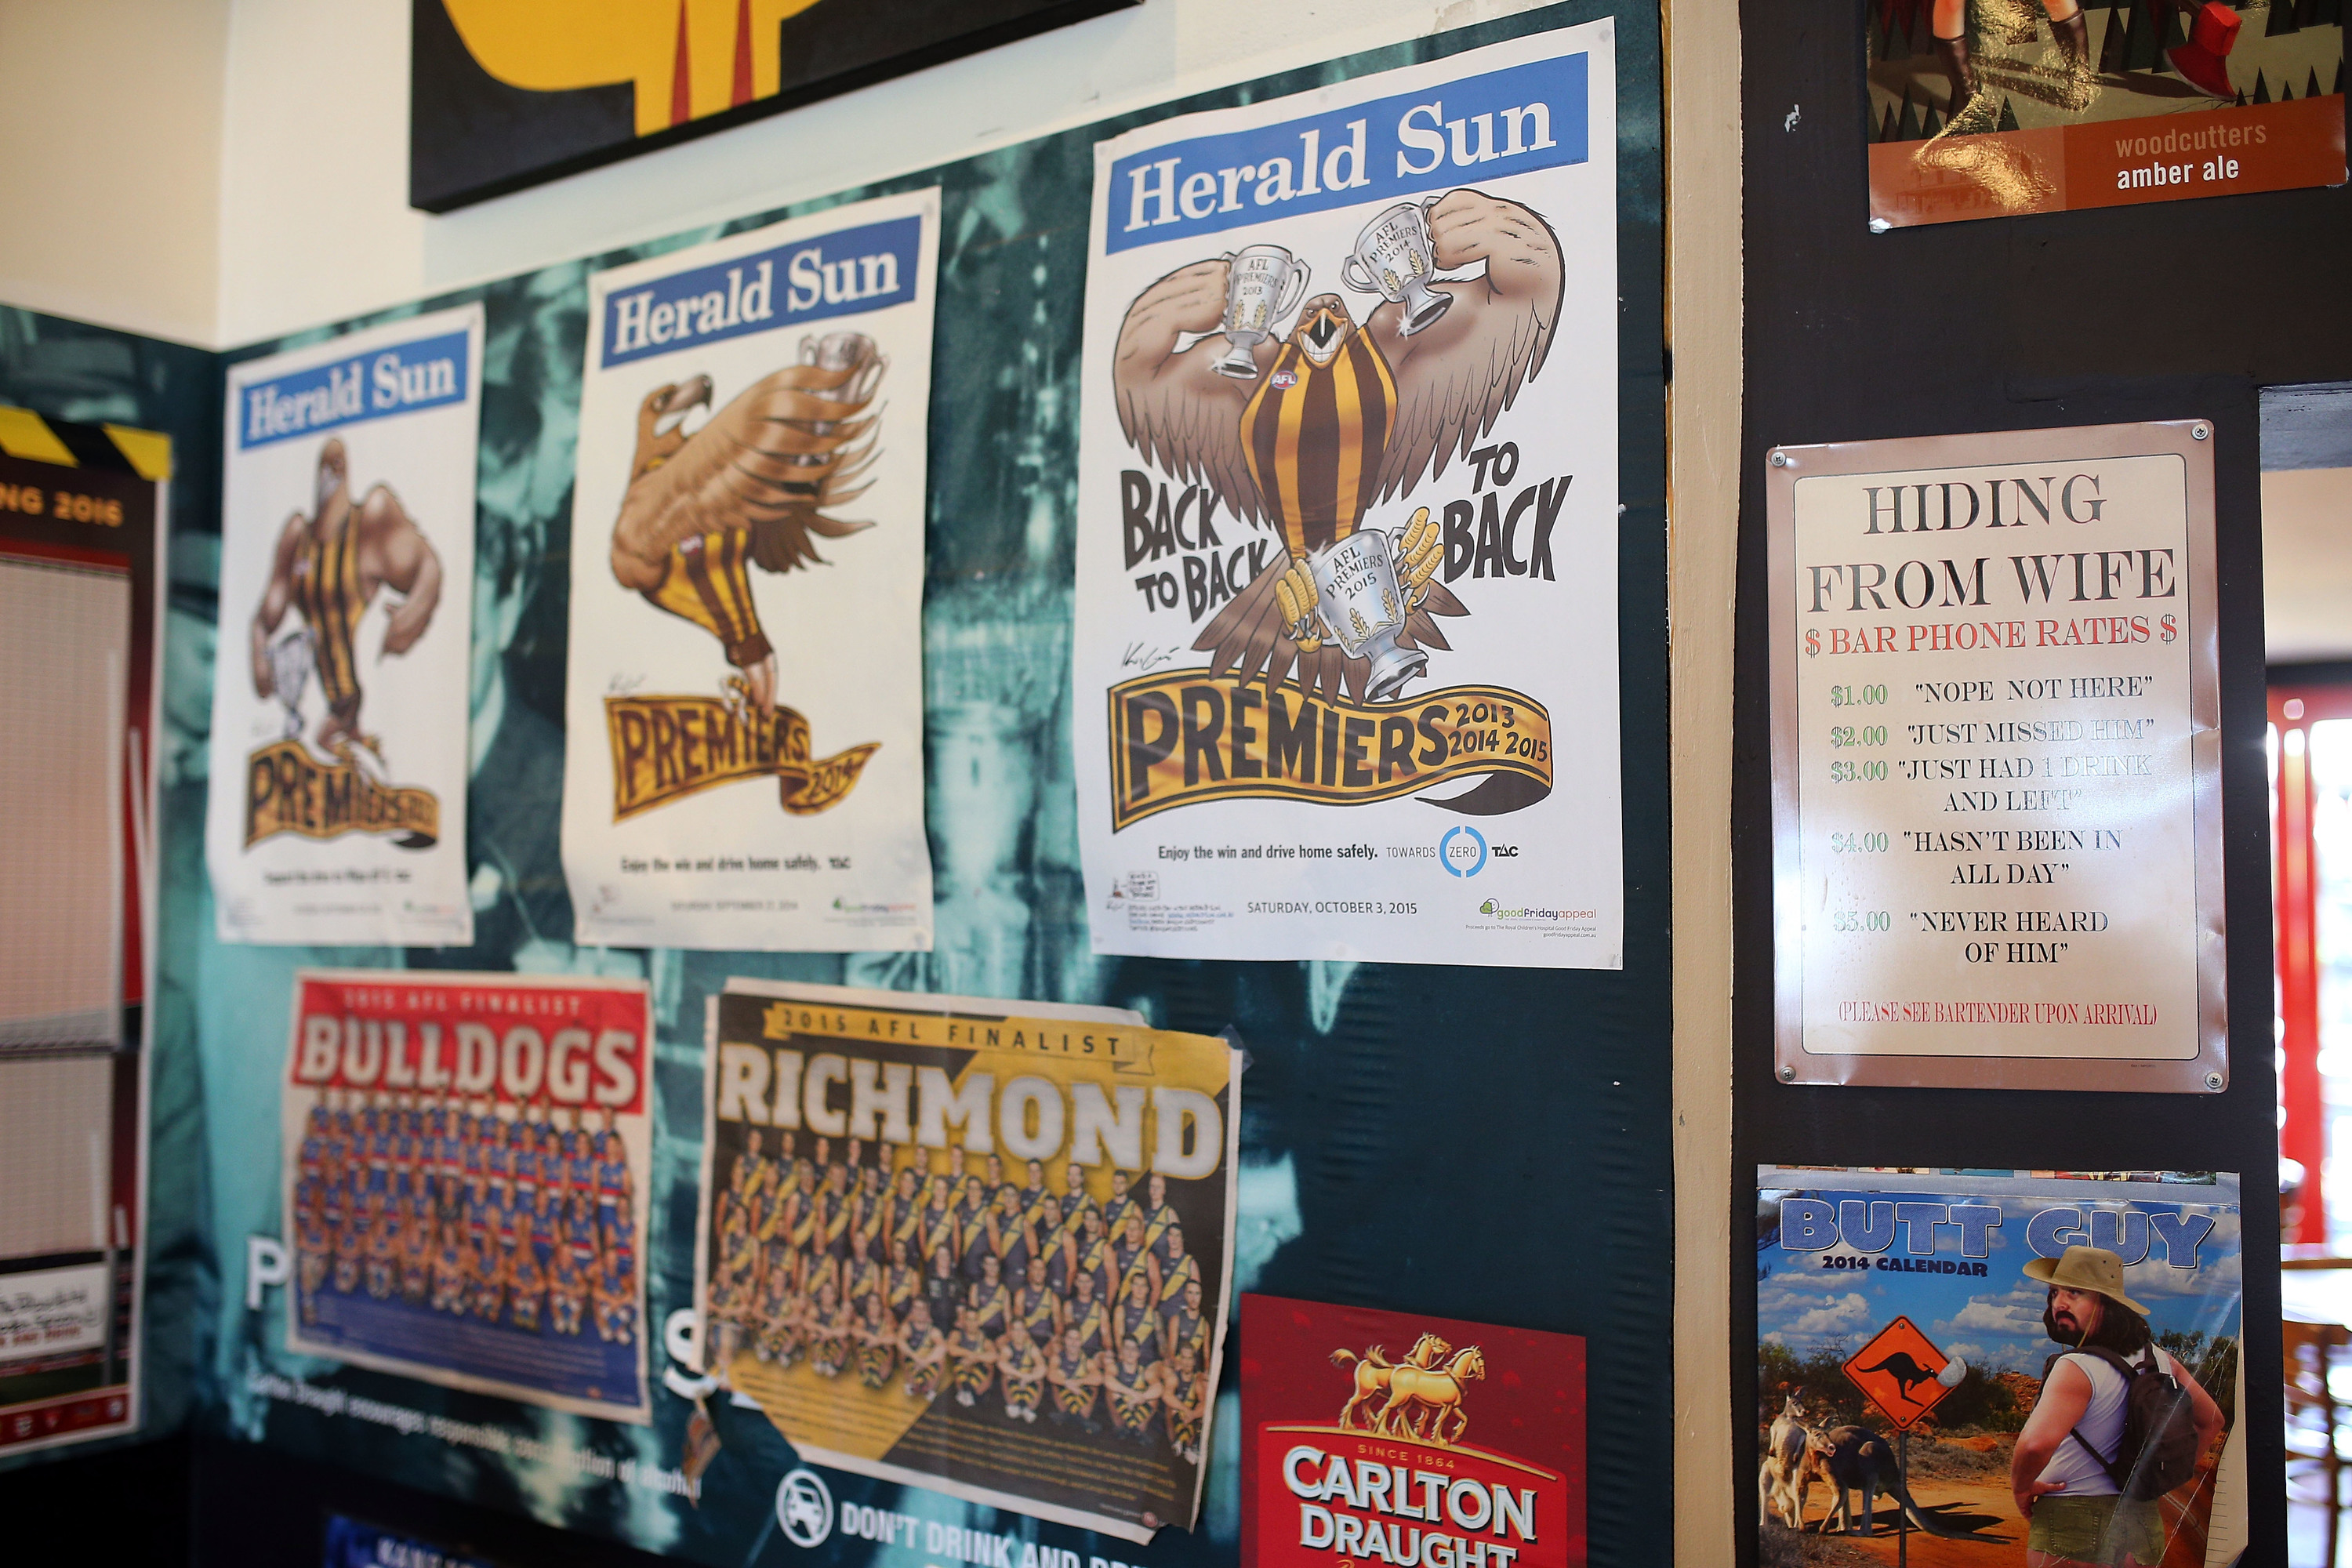 The best bars for the AFL finals